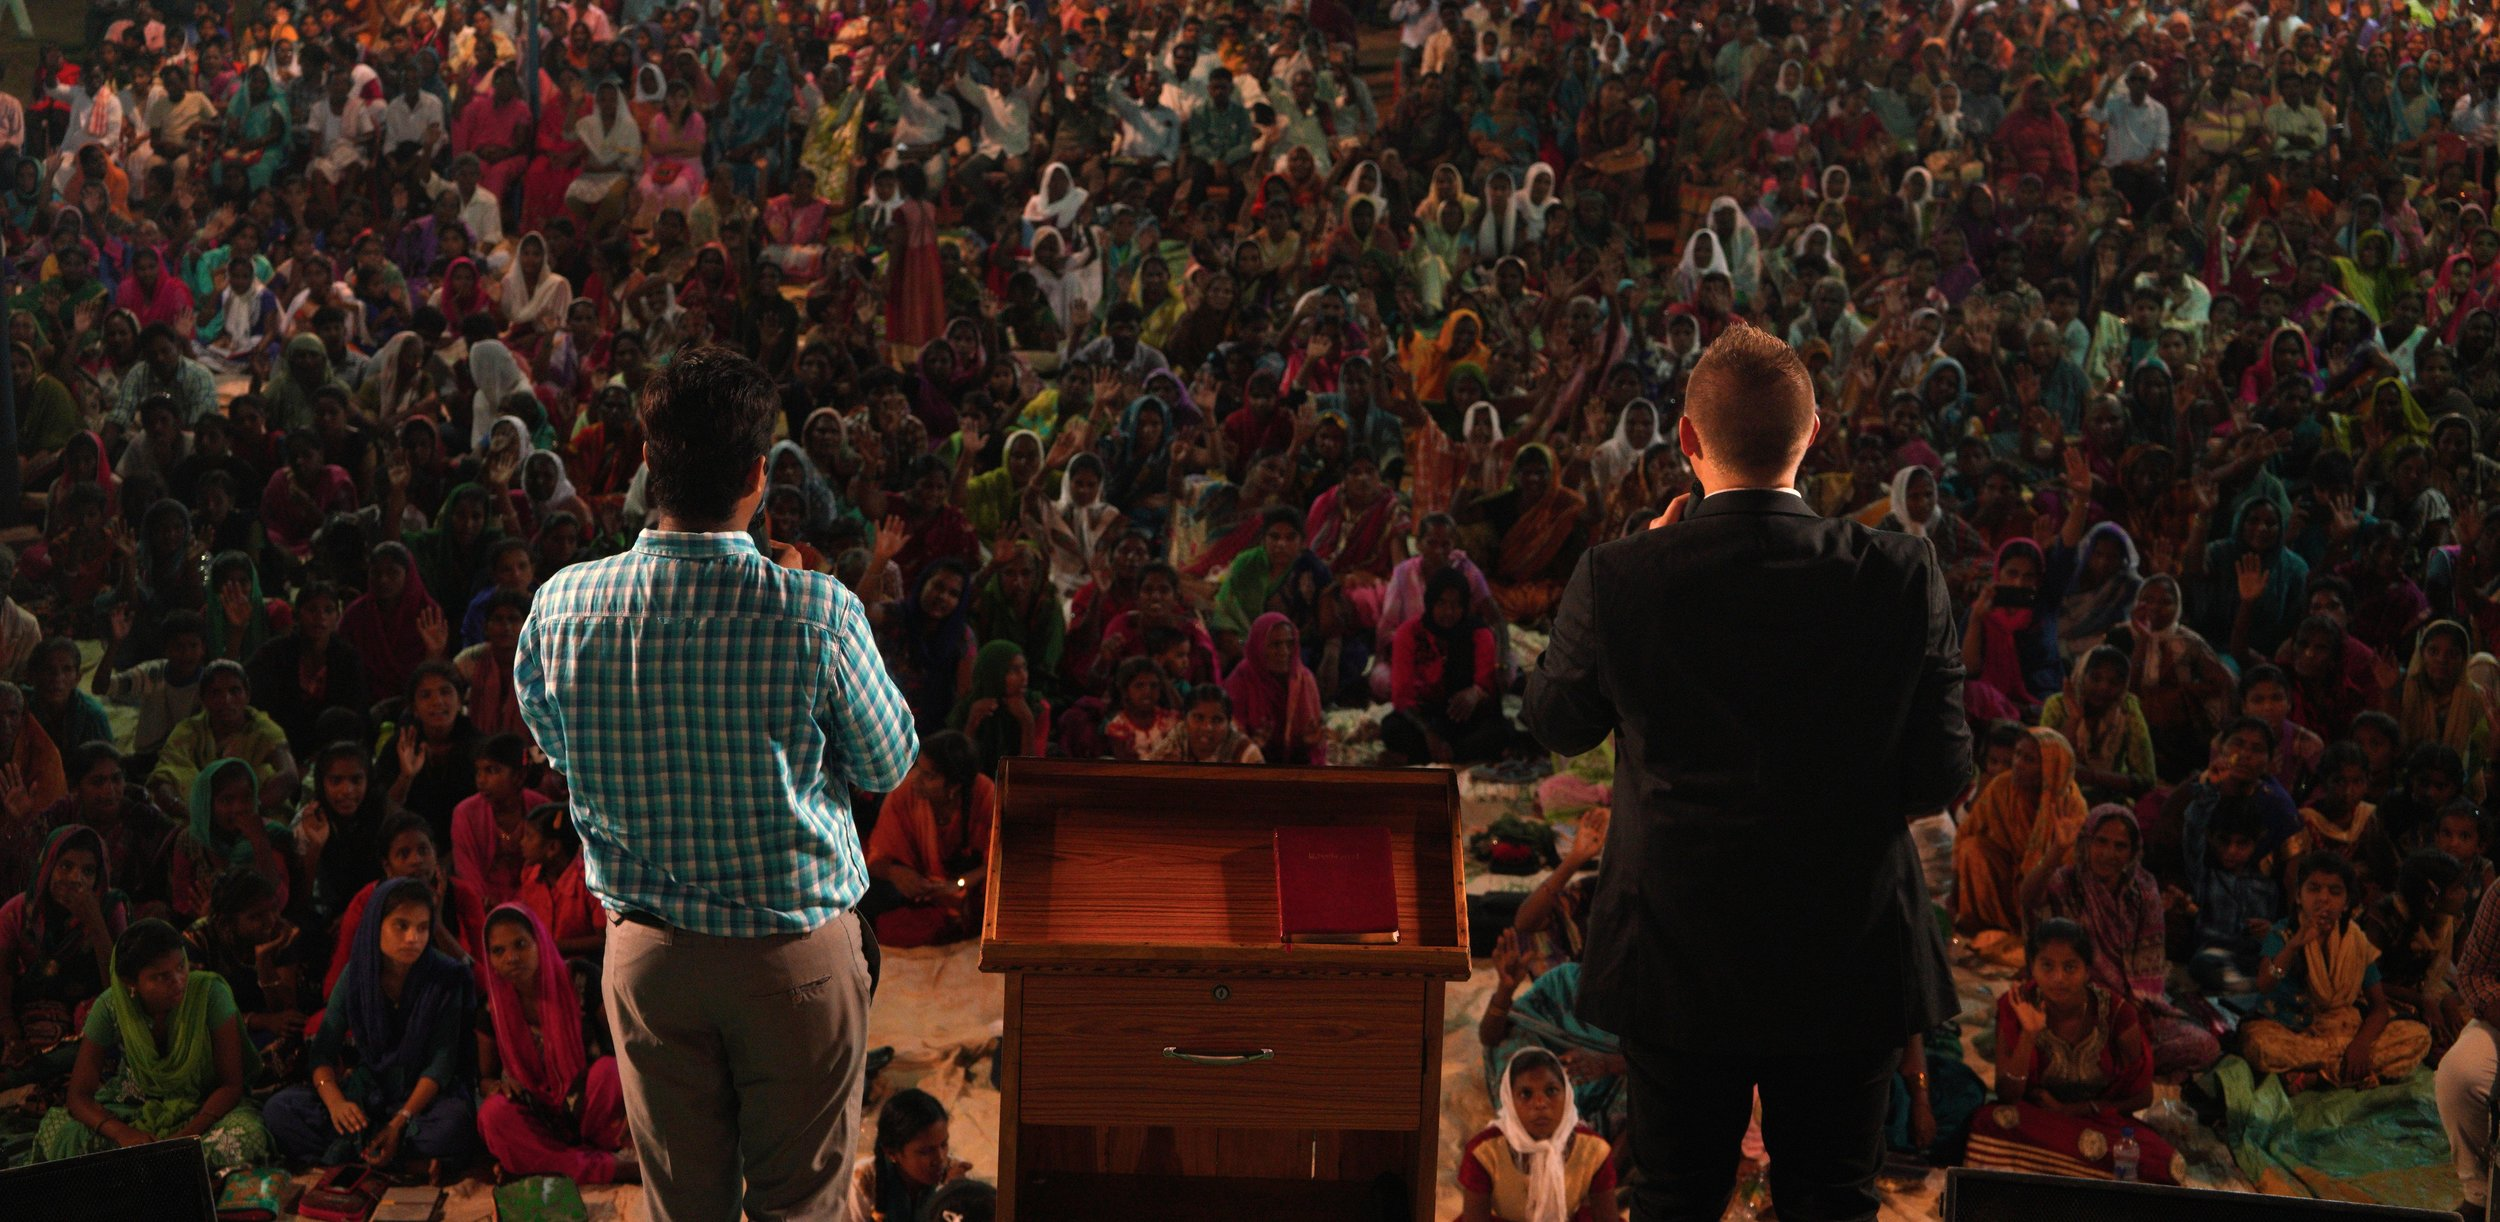 Tonight over 1000 people heard a crystal-clear Gospel message!